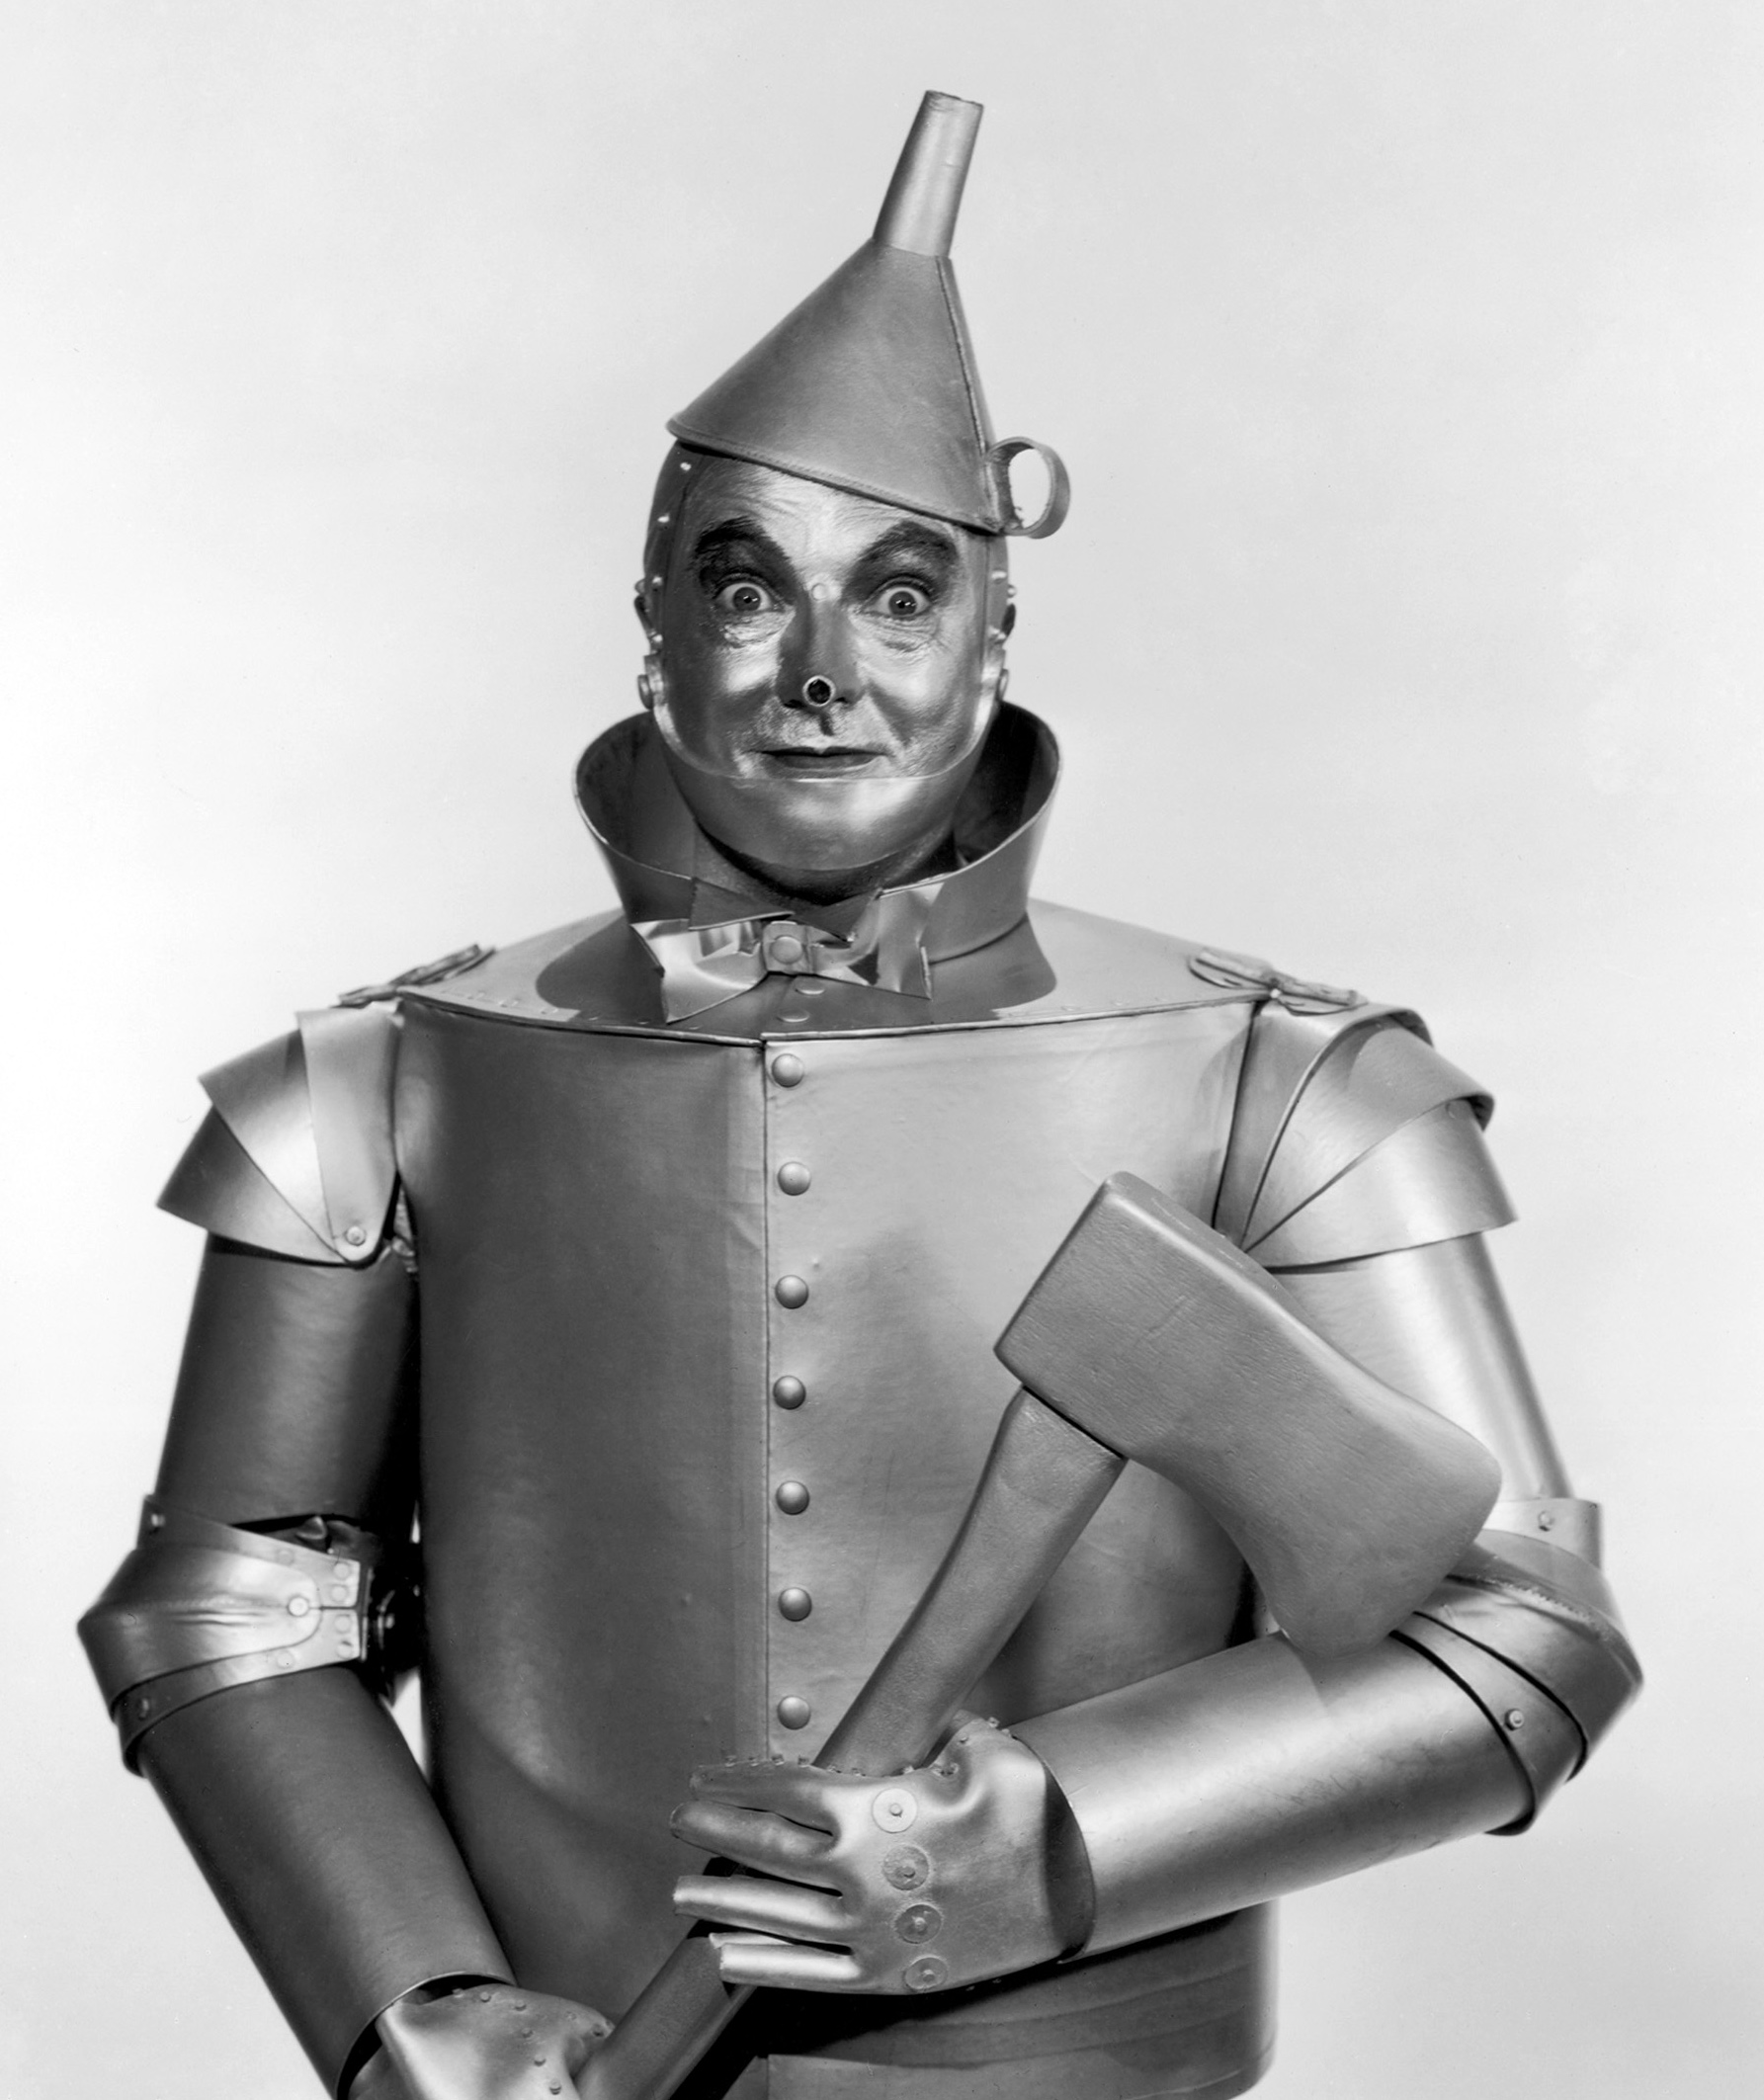 Wizard of oz tinman jack haley socialpsychol for Tin man out of cans